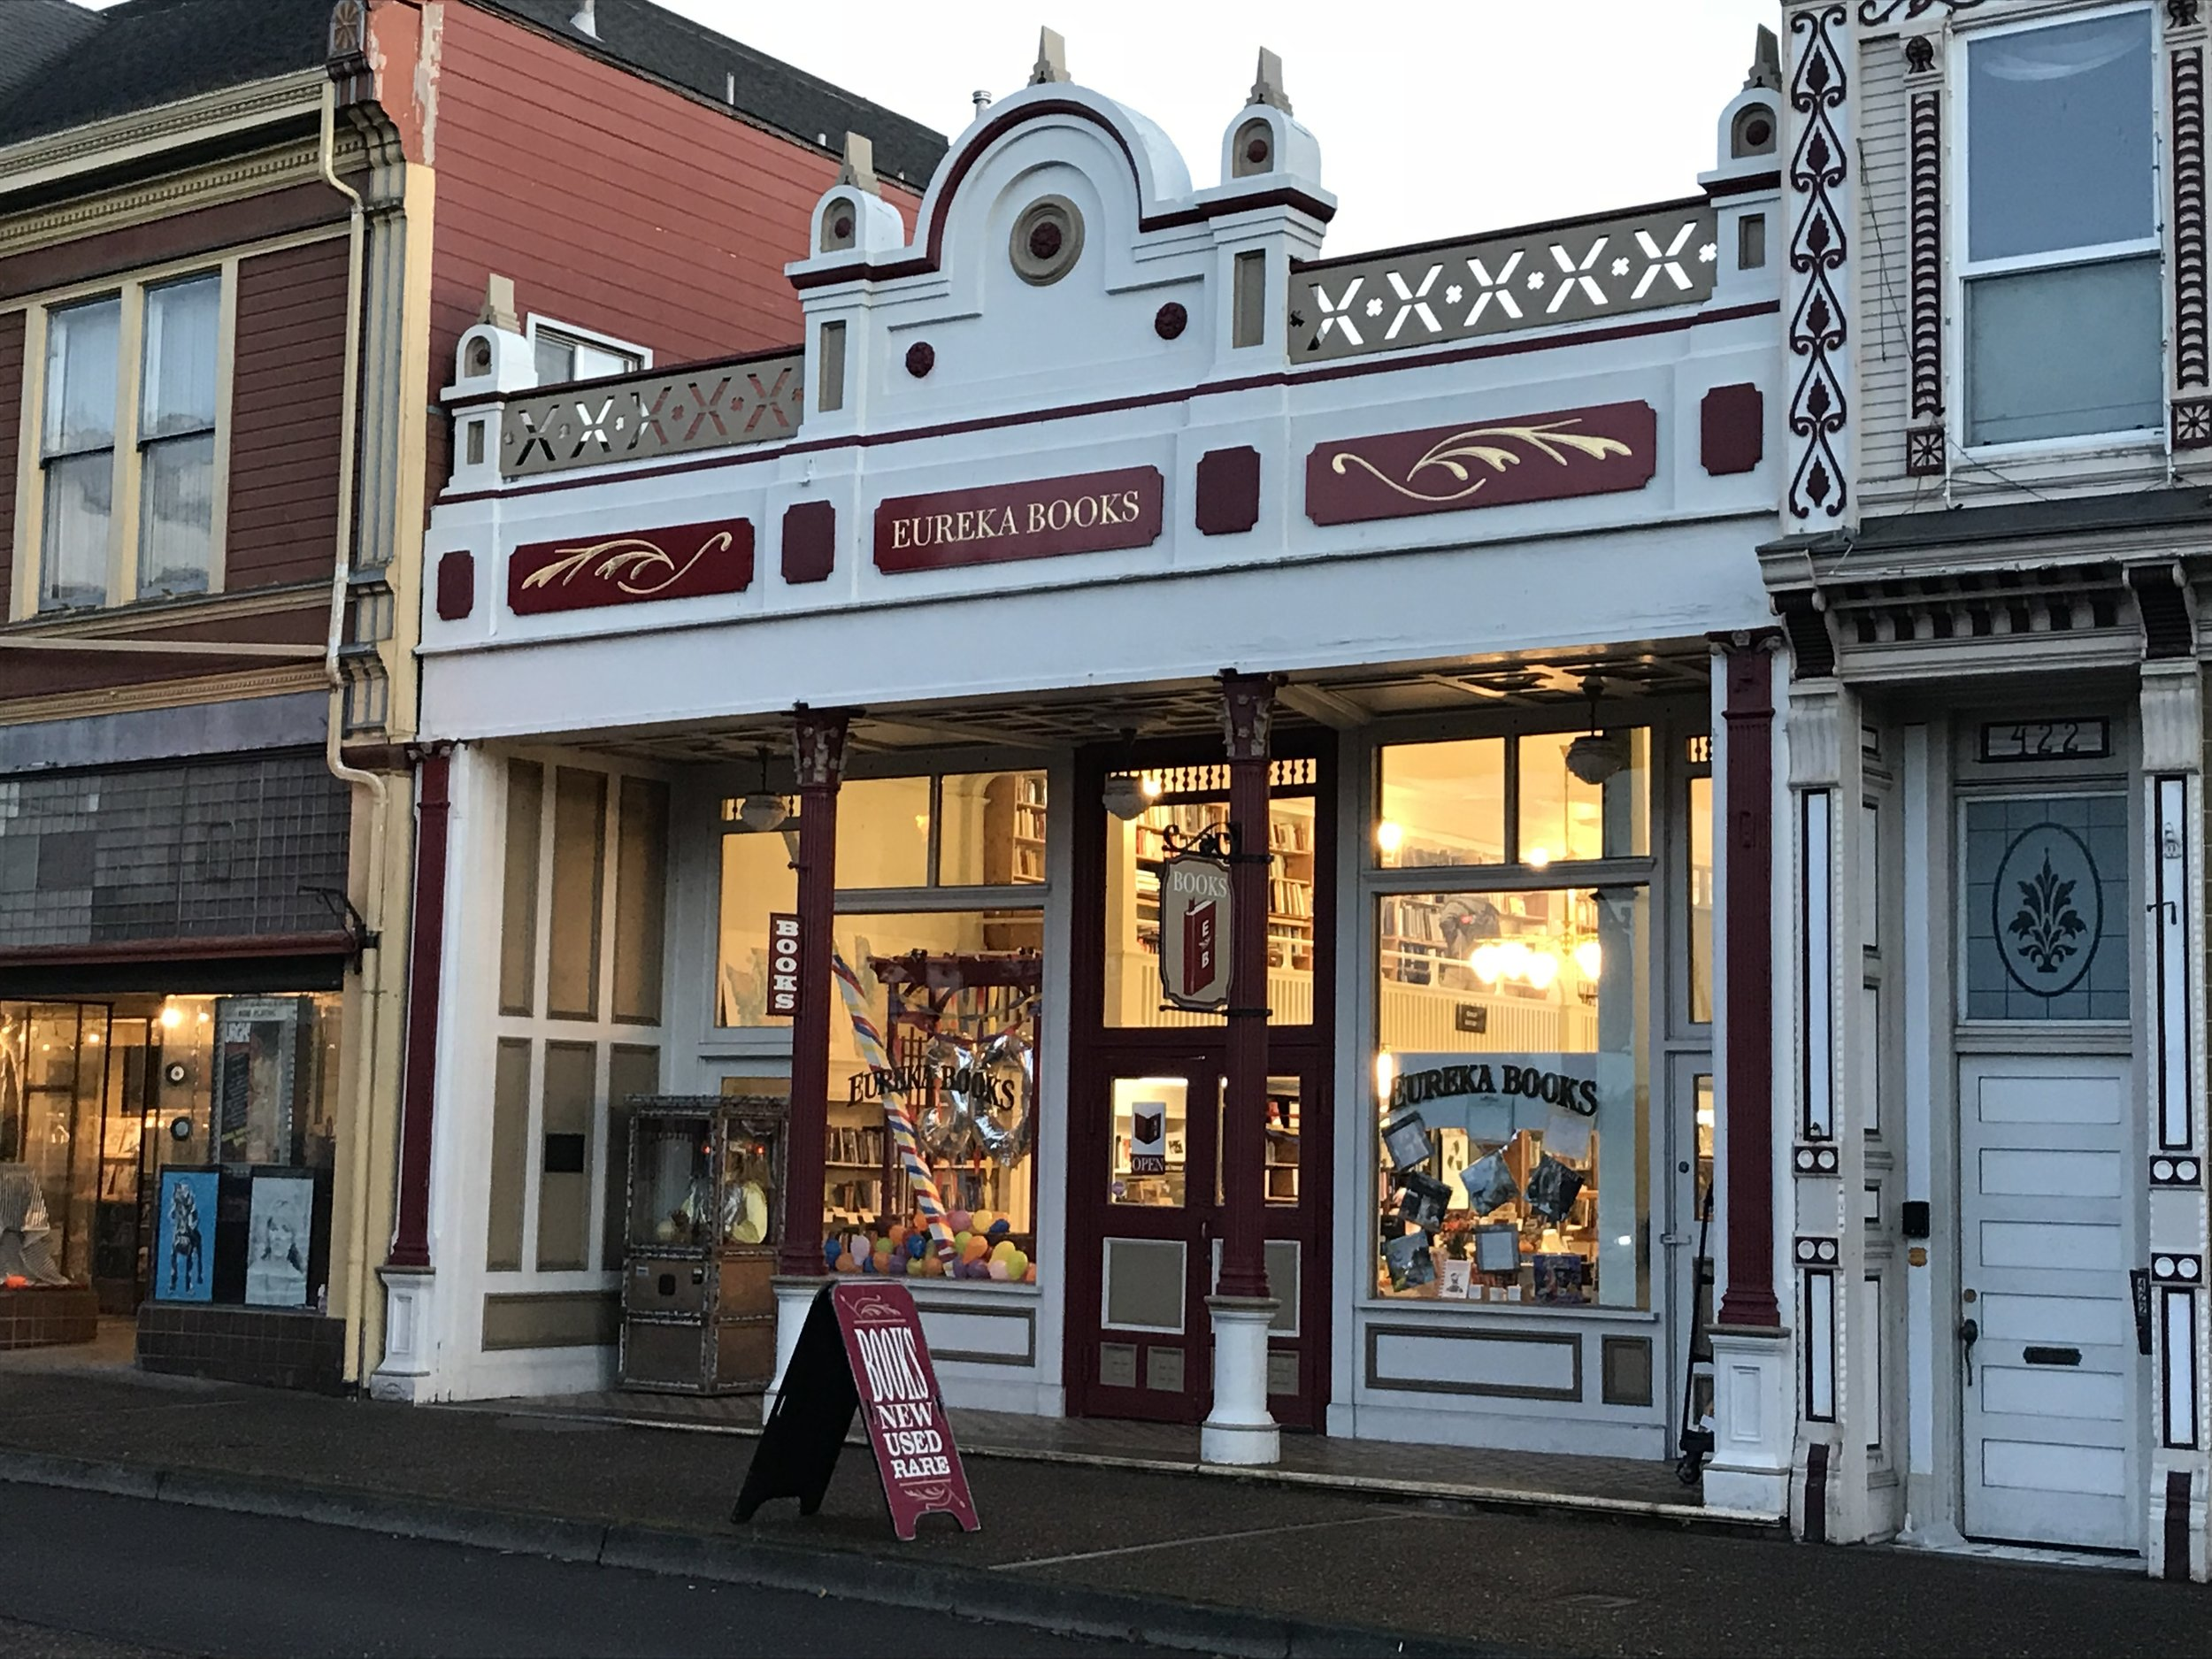 Hip independent book stores on the road like this one in Eureka California are great learning spots on the road with kiddos!